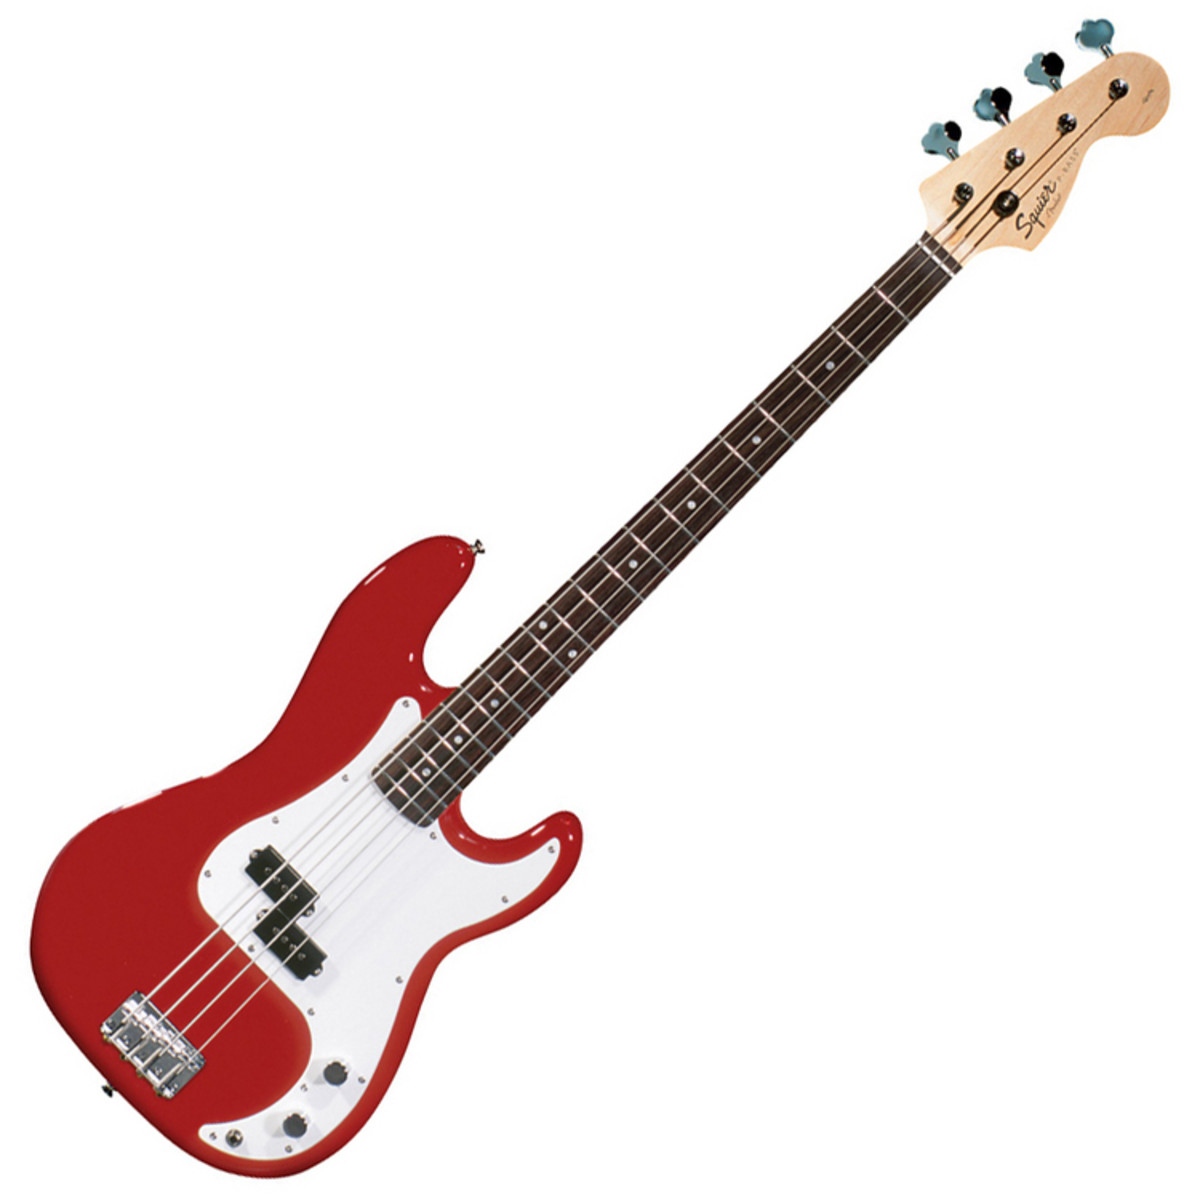 squier by fender affinity p bass rw metallic red at. Black Bedroom Furniture Sets. Home Design Ideas